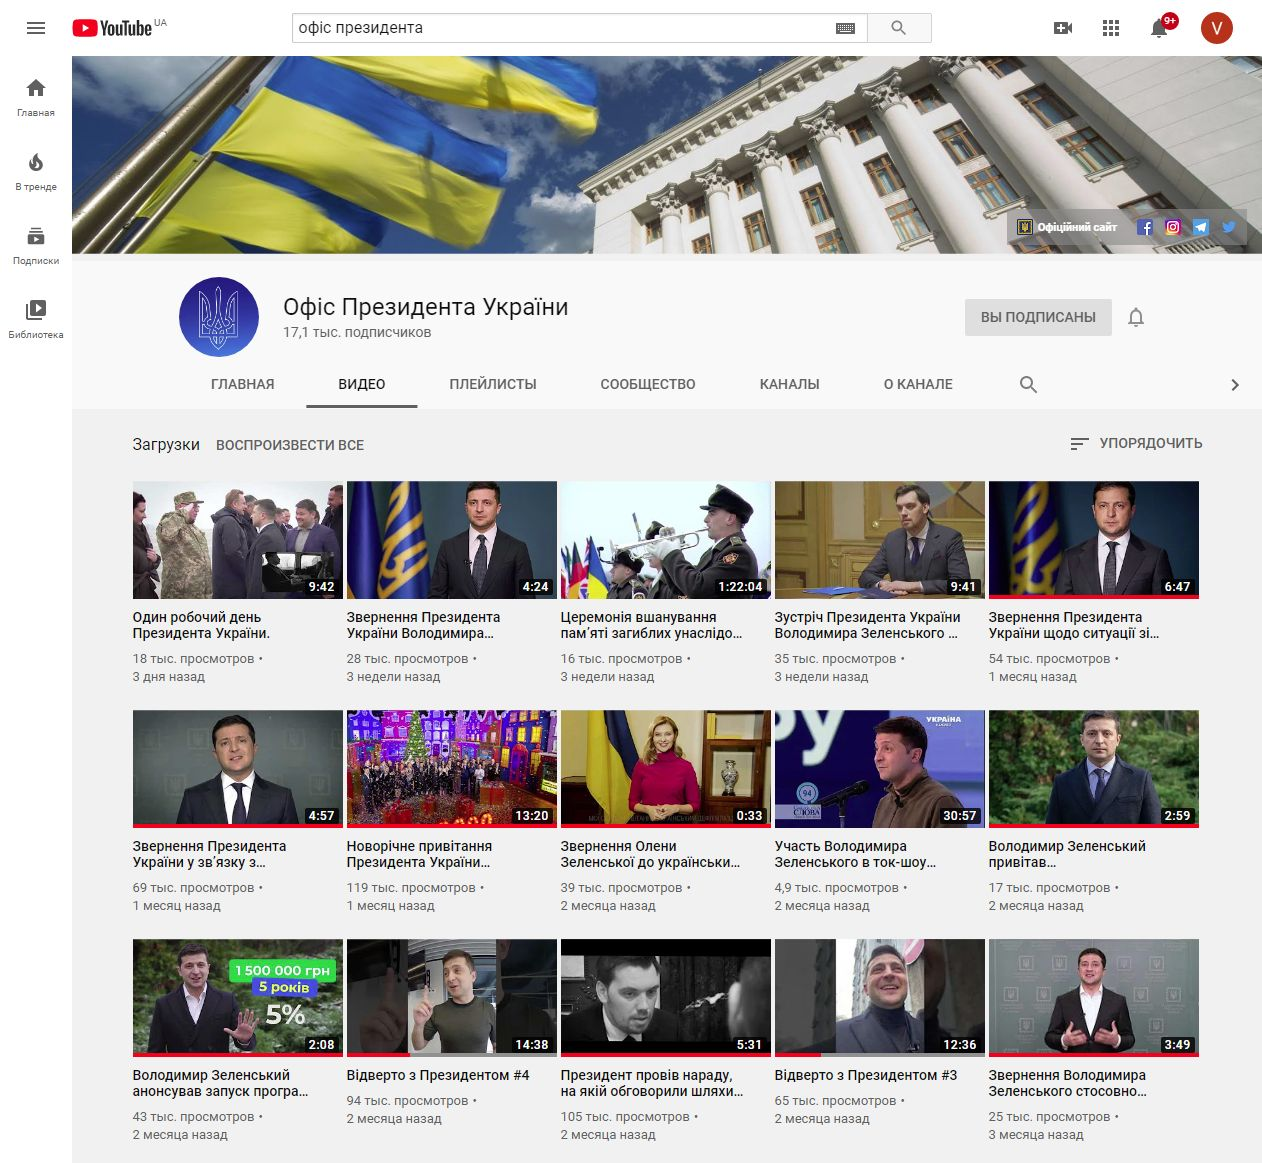 https://www.youtube.com/user/PresidentGovUa/videos